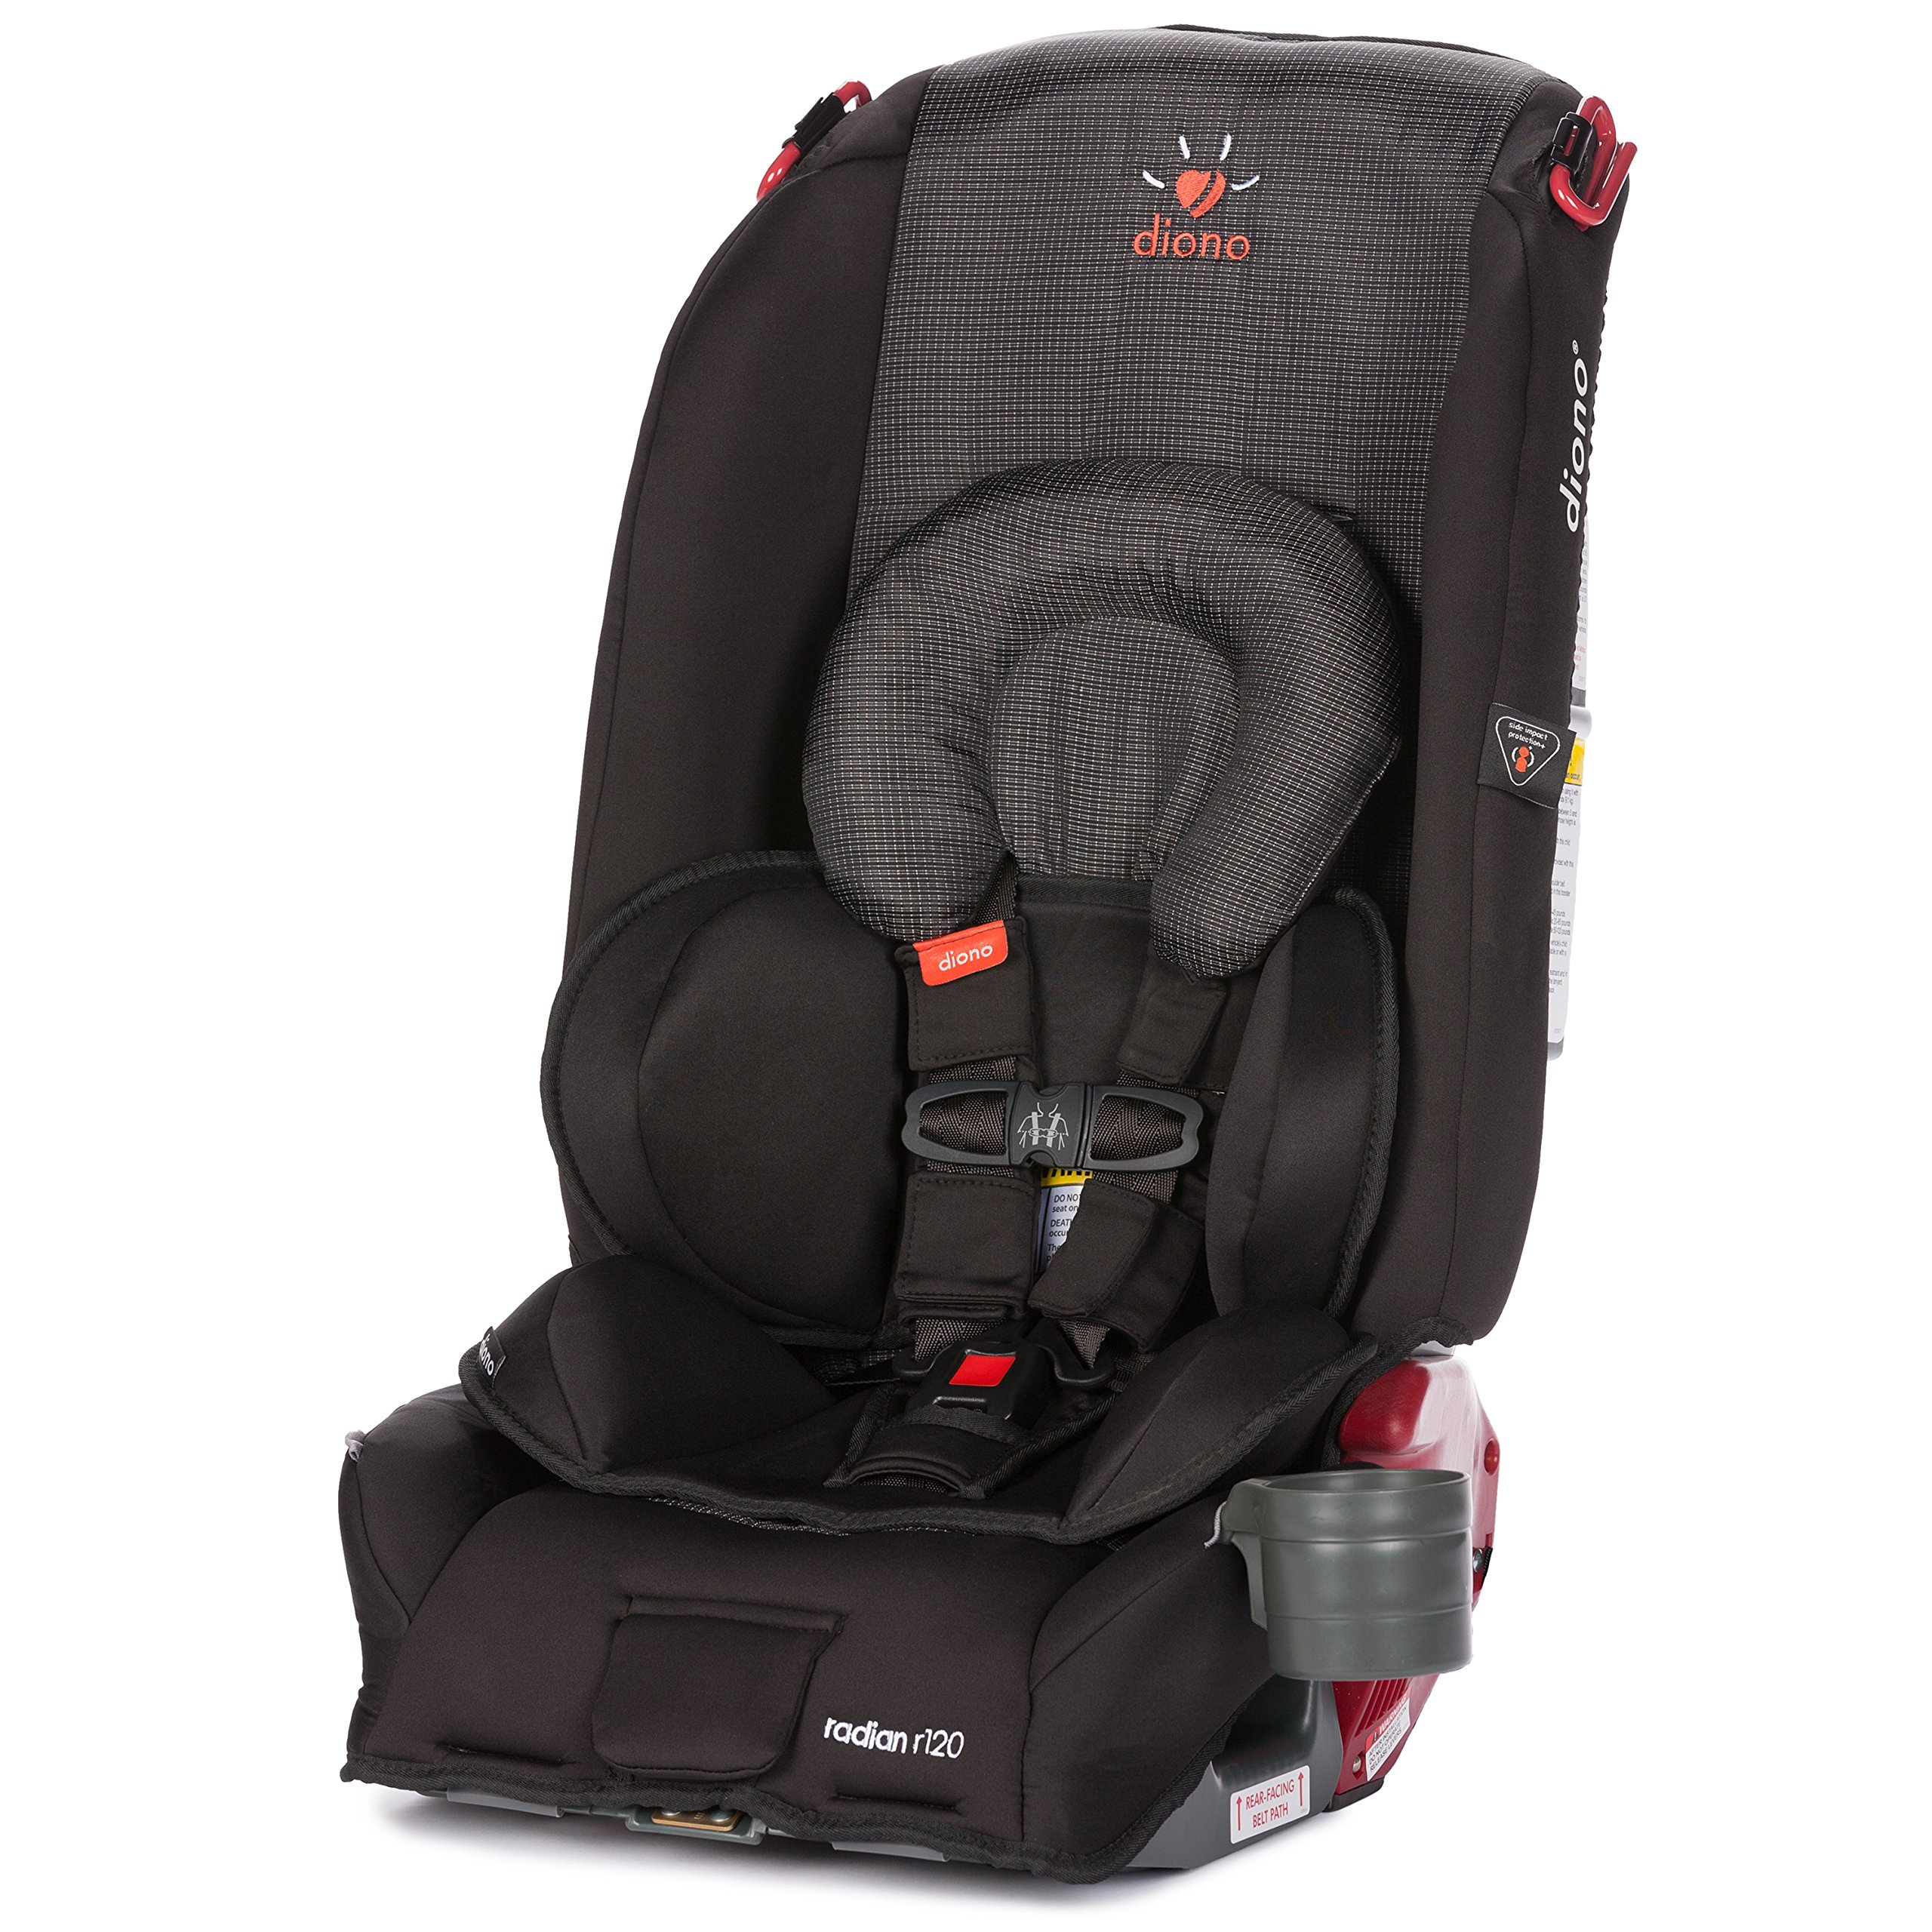 diono radian r120 all in one convertible car seat twilight amazon. Black Bedroom Furniture Sets. Home Design Ideas